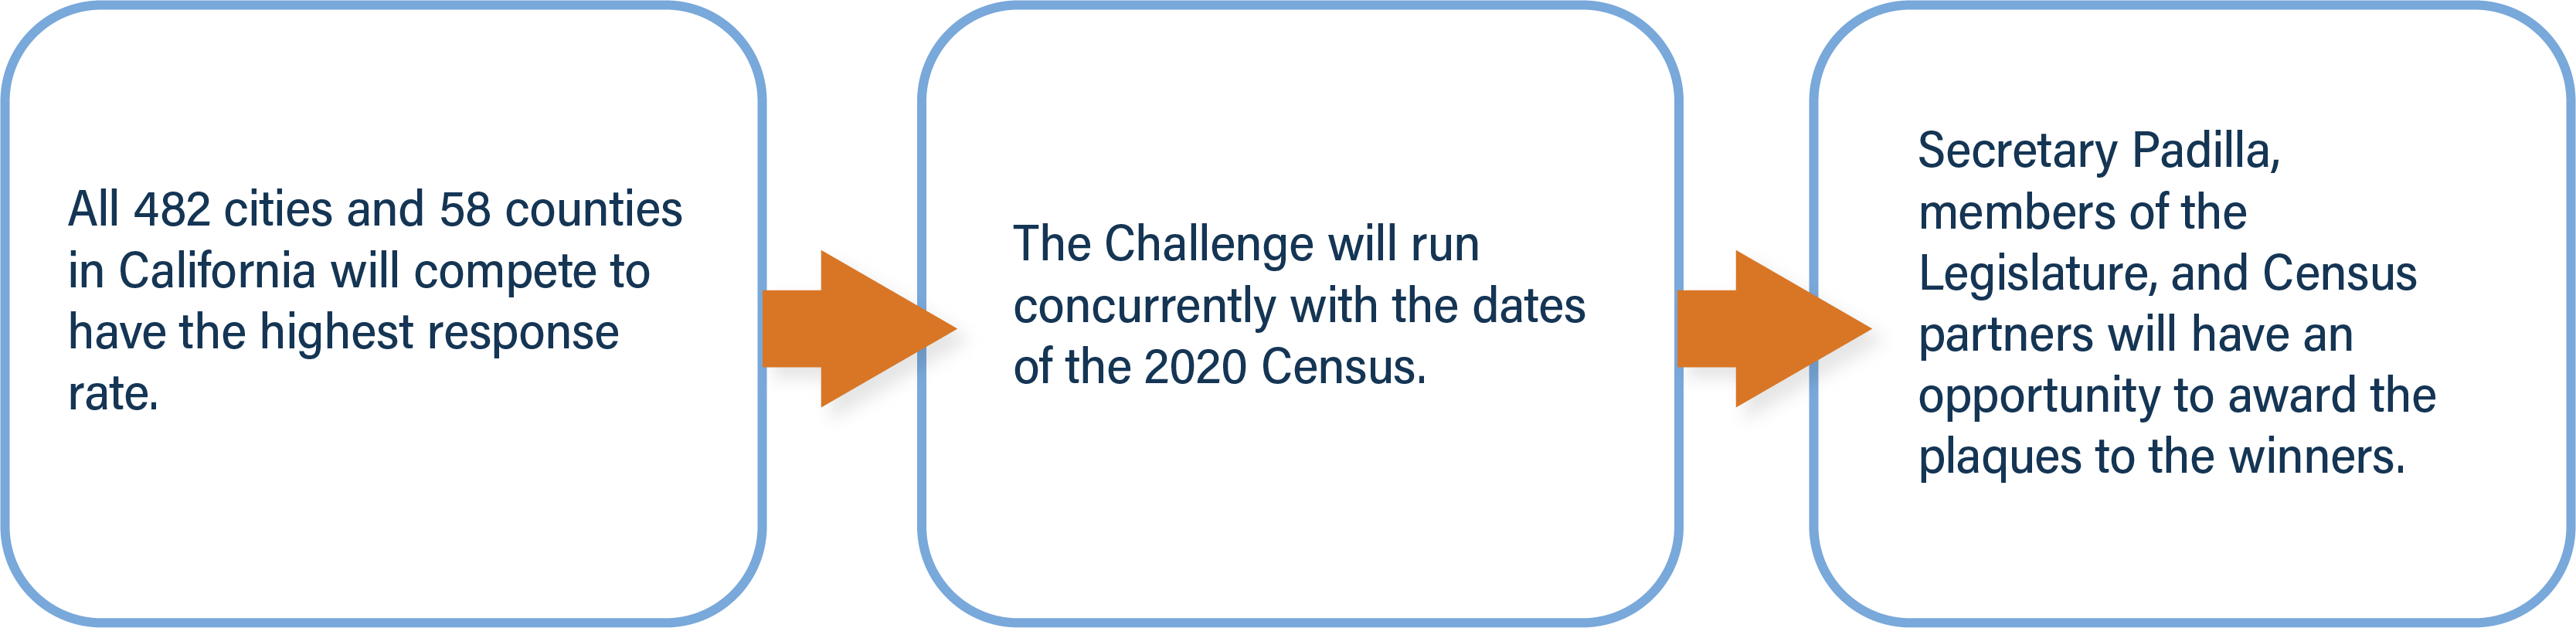 All 482 cities and 58 counties in California will compete to have the highest response rate.(Next Section) The challenge will run concurrently with the dates of the 2020 Census. (Next Section) Secretary Padilla, members of the Legislature, and Census partners will have an opportunity to award the plaques to the winners.